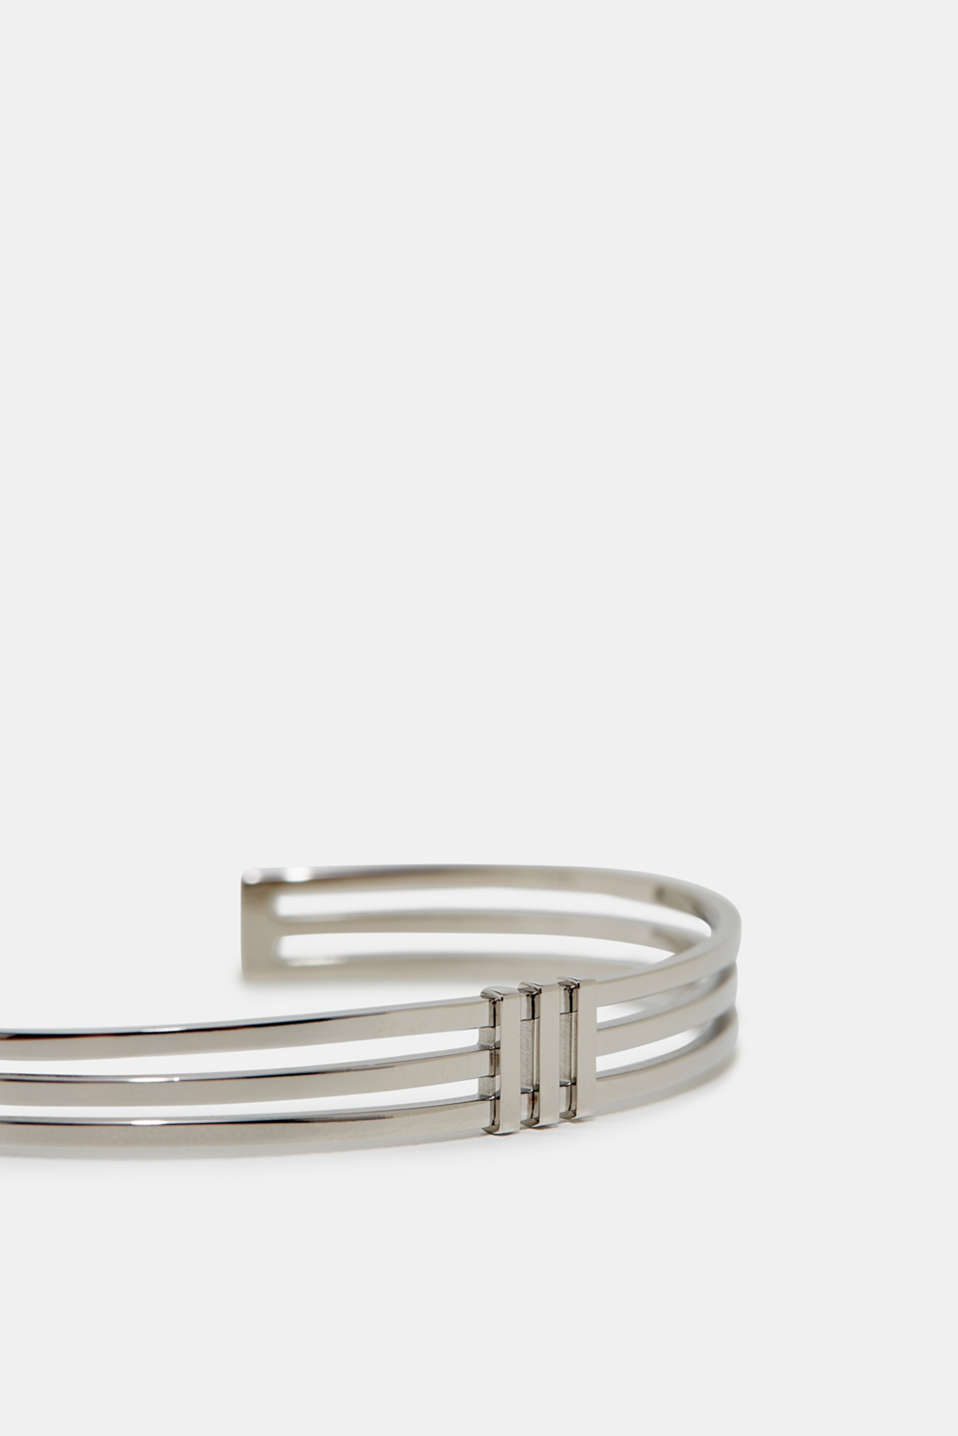 Bangle in silver tone stainless steel